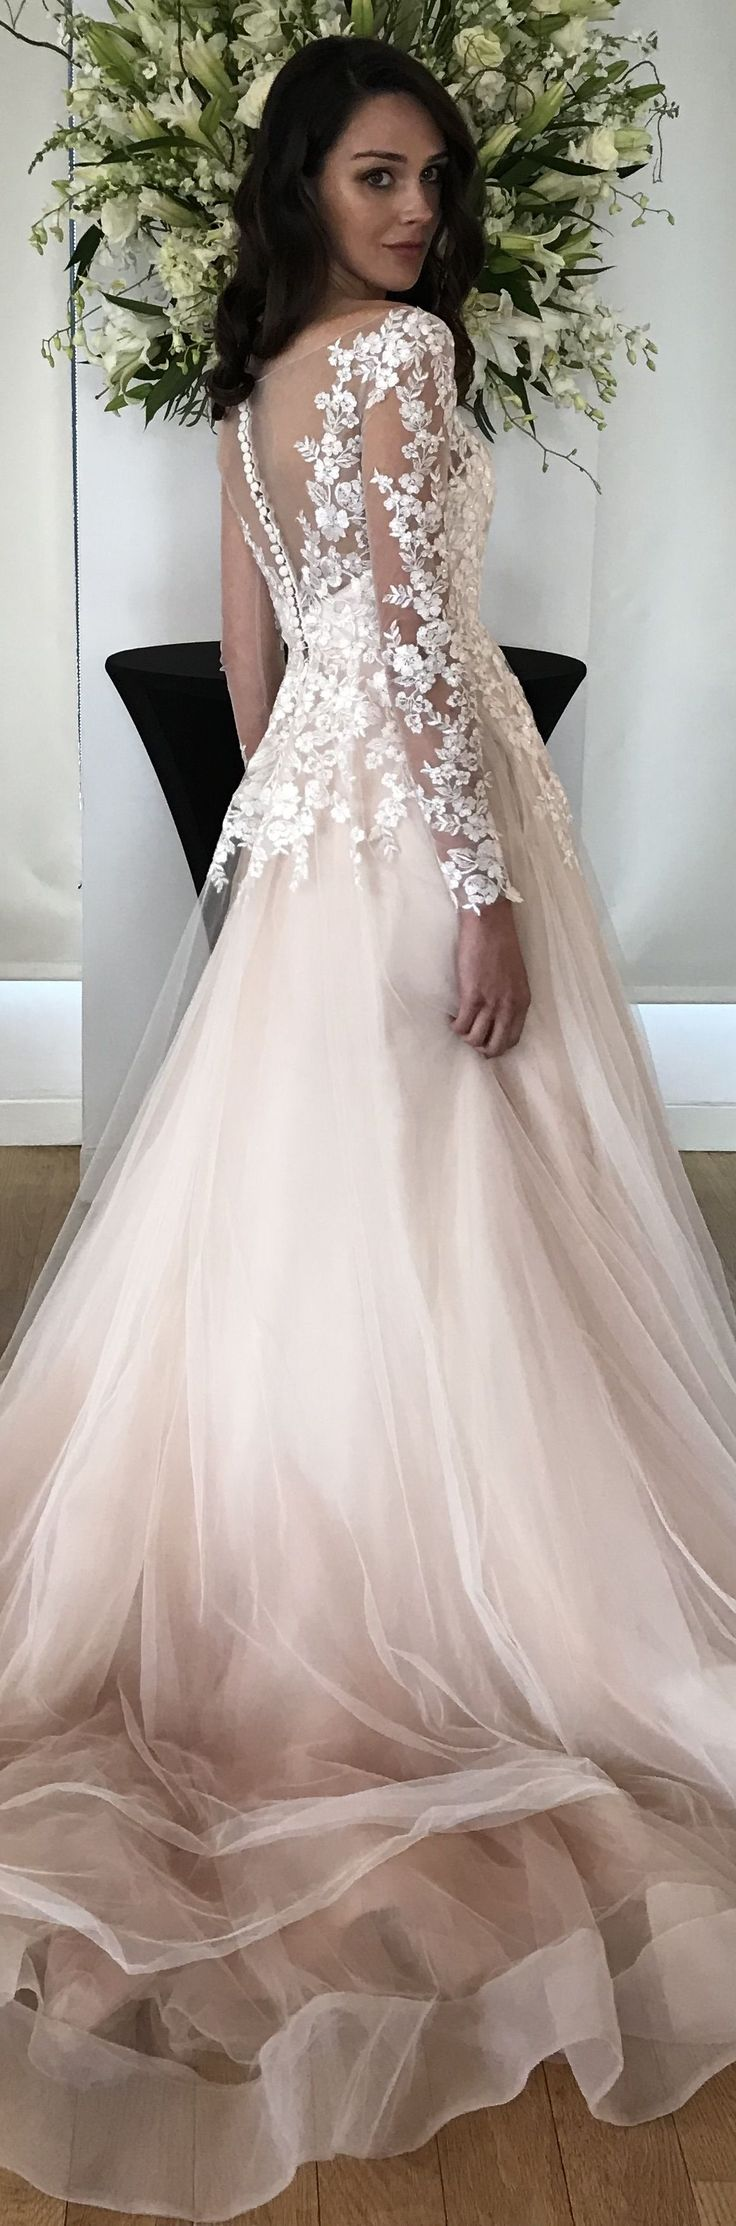 Alba wedding dress by Kelly Faetanini in Blush // Beaded, embroidered long sleeve illusion ombre ball gown with horsehair hem and pockets